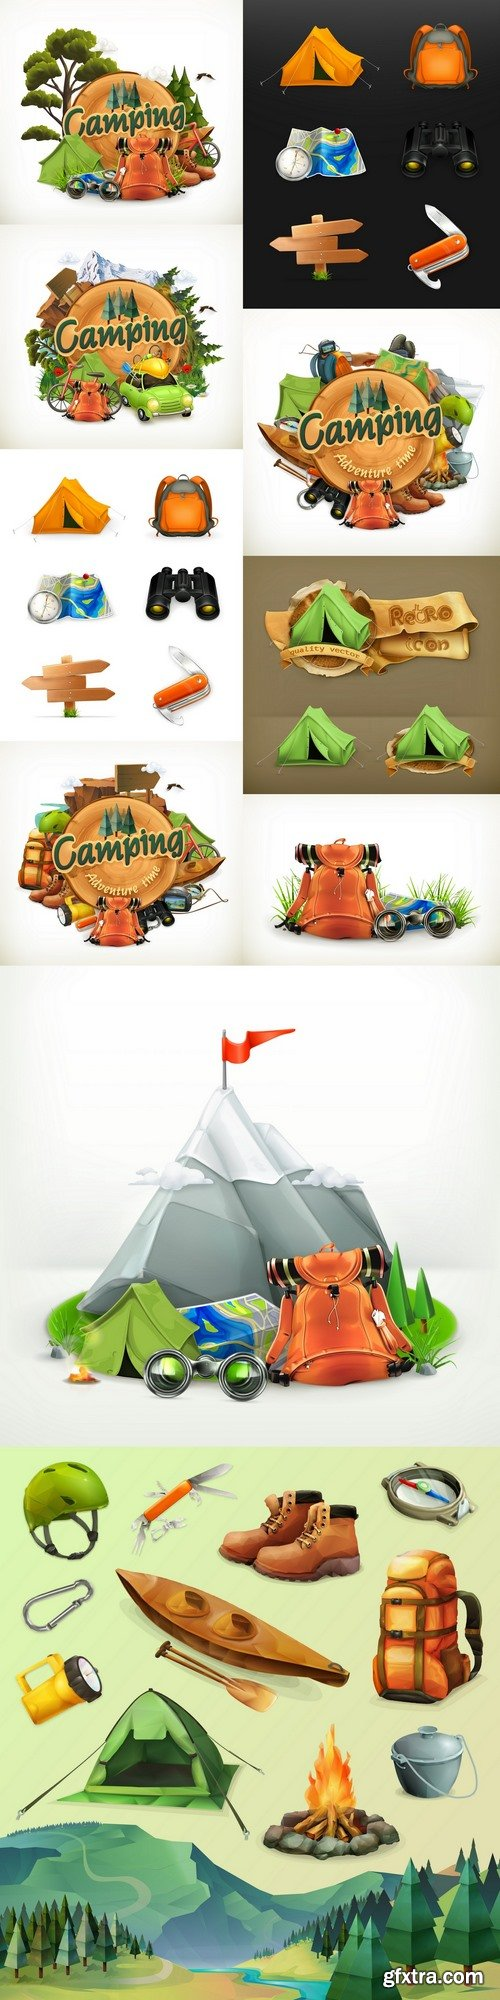 Camping. Adventure time